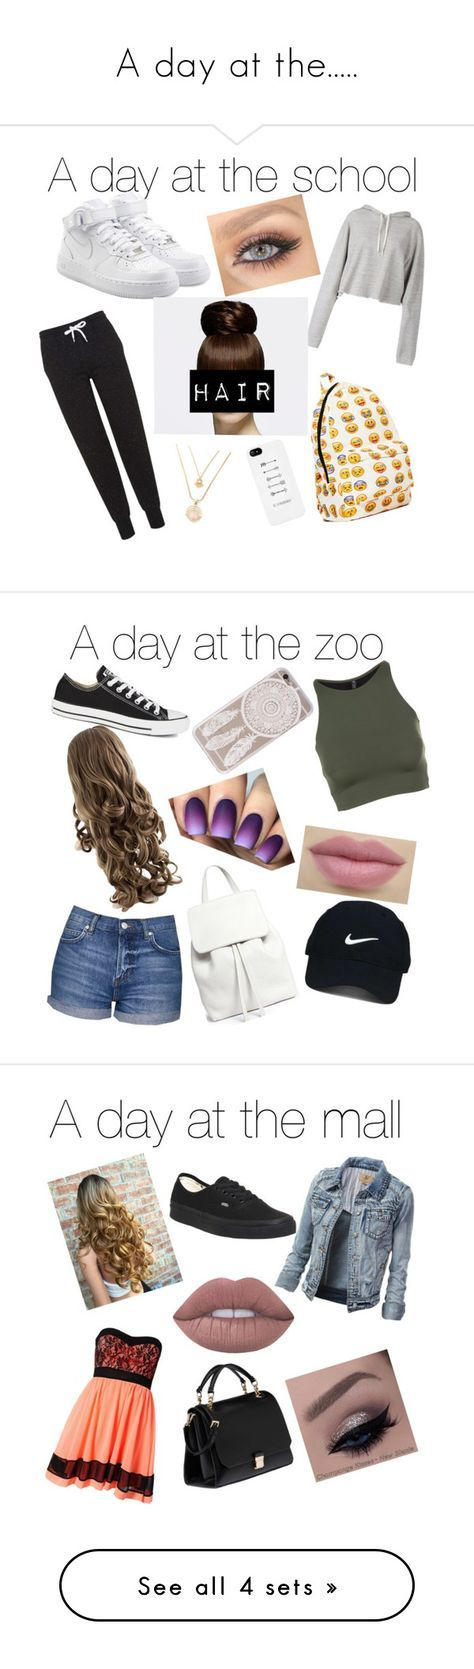 """""""A day at the....."""" by mariposa68 ❤️ liked on Polyvore featuring Topshop, NIKE, Faith Connexion, Mansur Gavriel, Onzie, Converse, Nike Golf, Sisters Point, Vans and Lime Crime"""